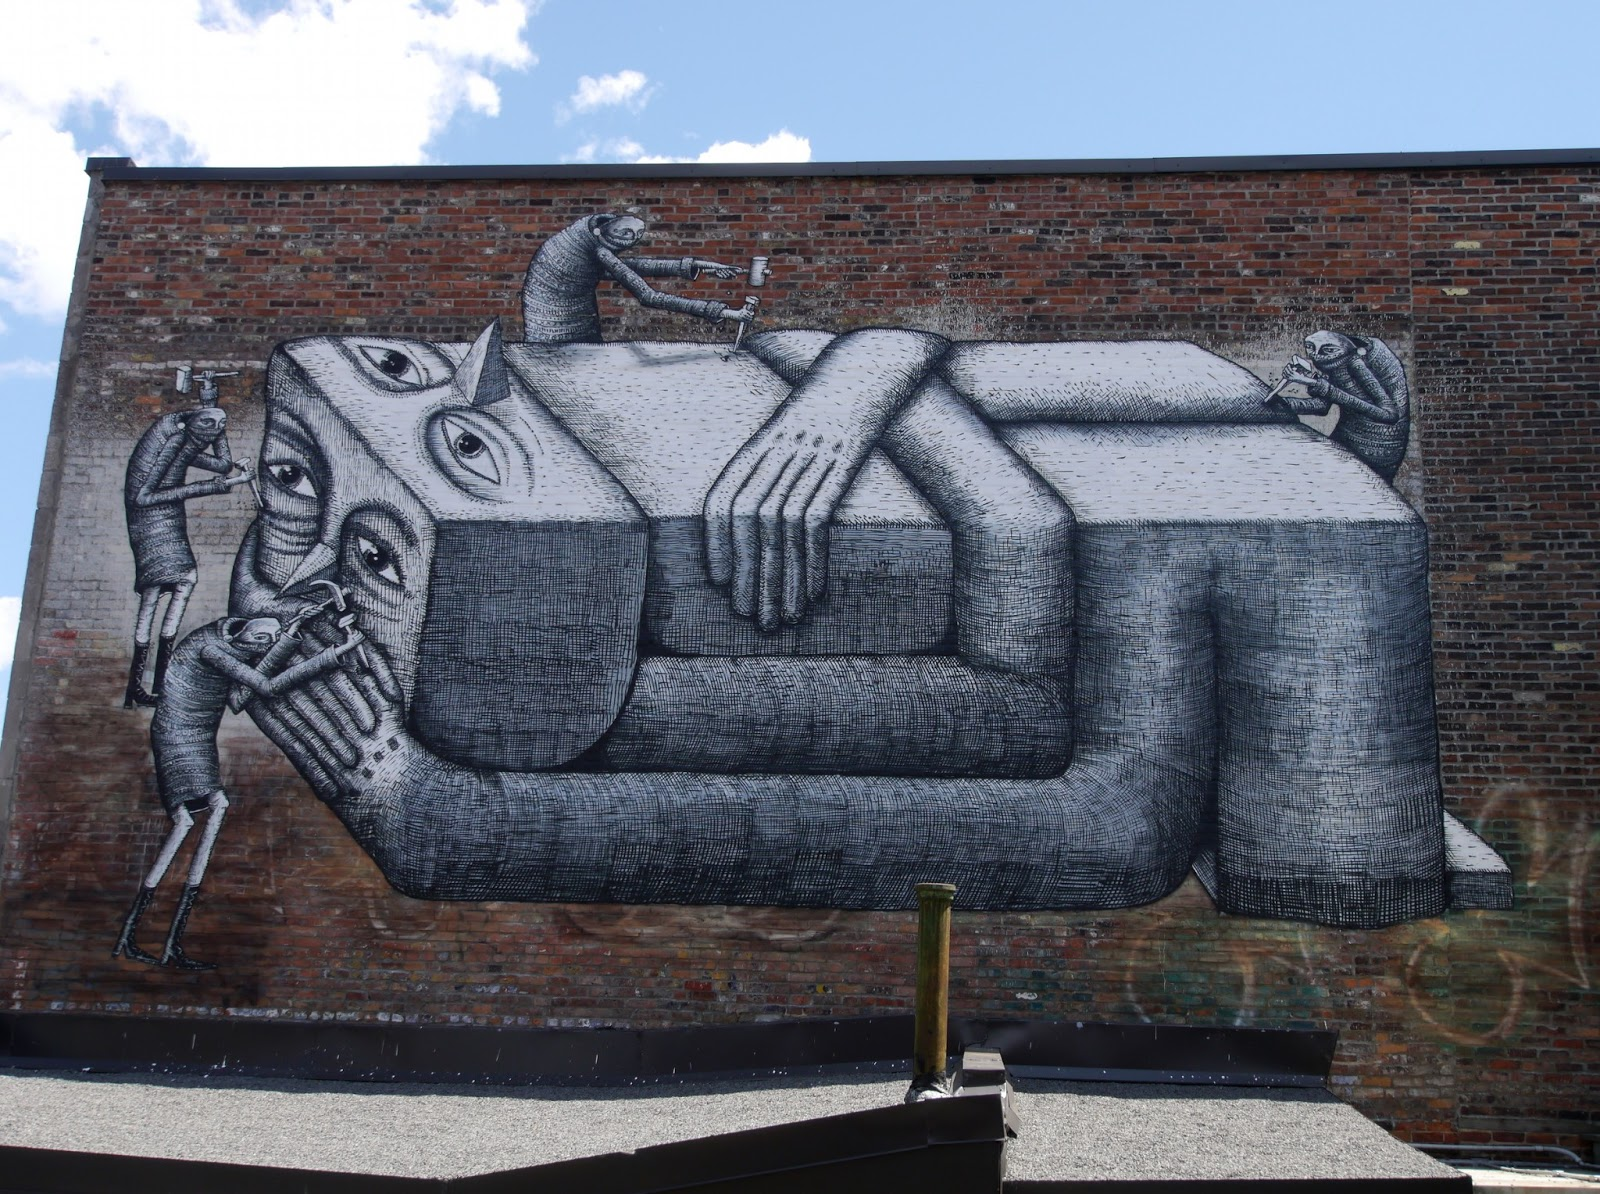 Phlegm new mural in montreal canada part ii for Art mural montreal